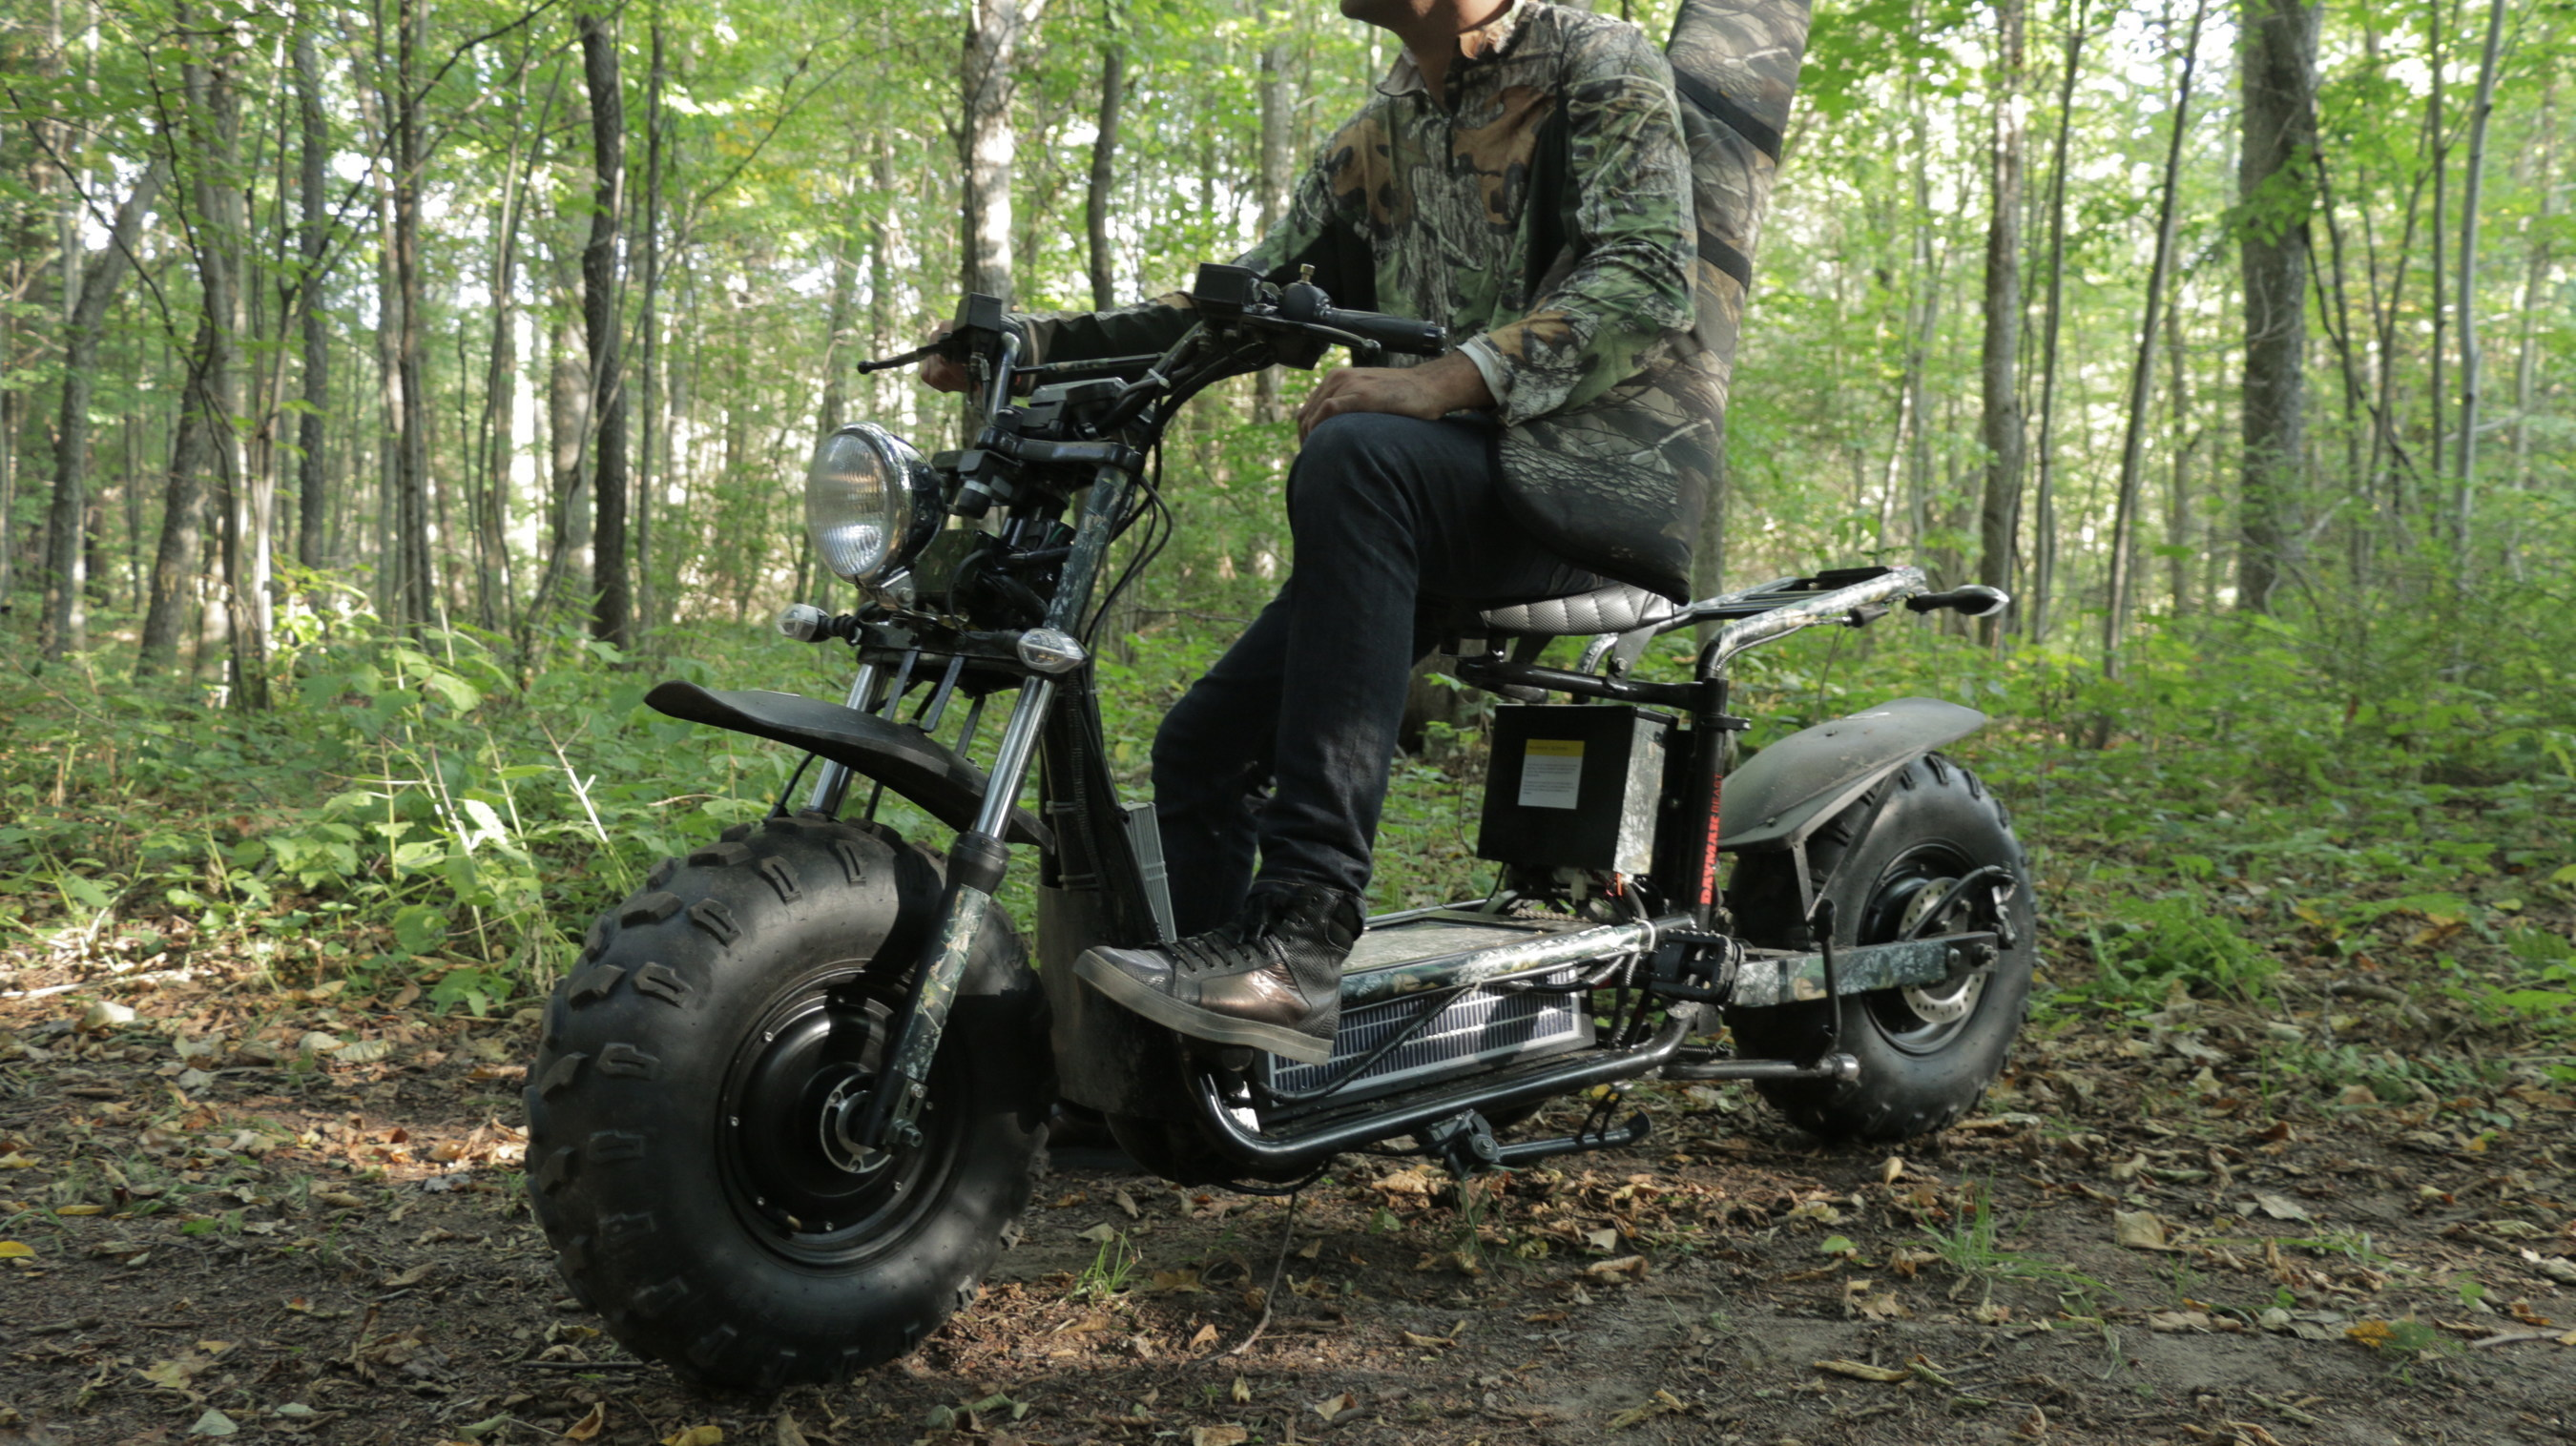 The Beast D is the silent off-road ATV